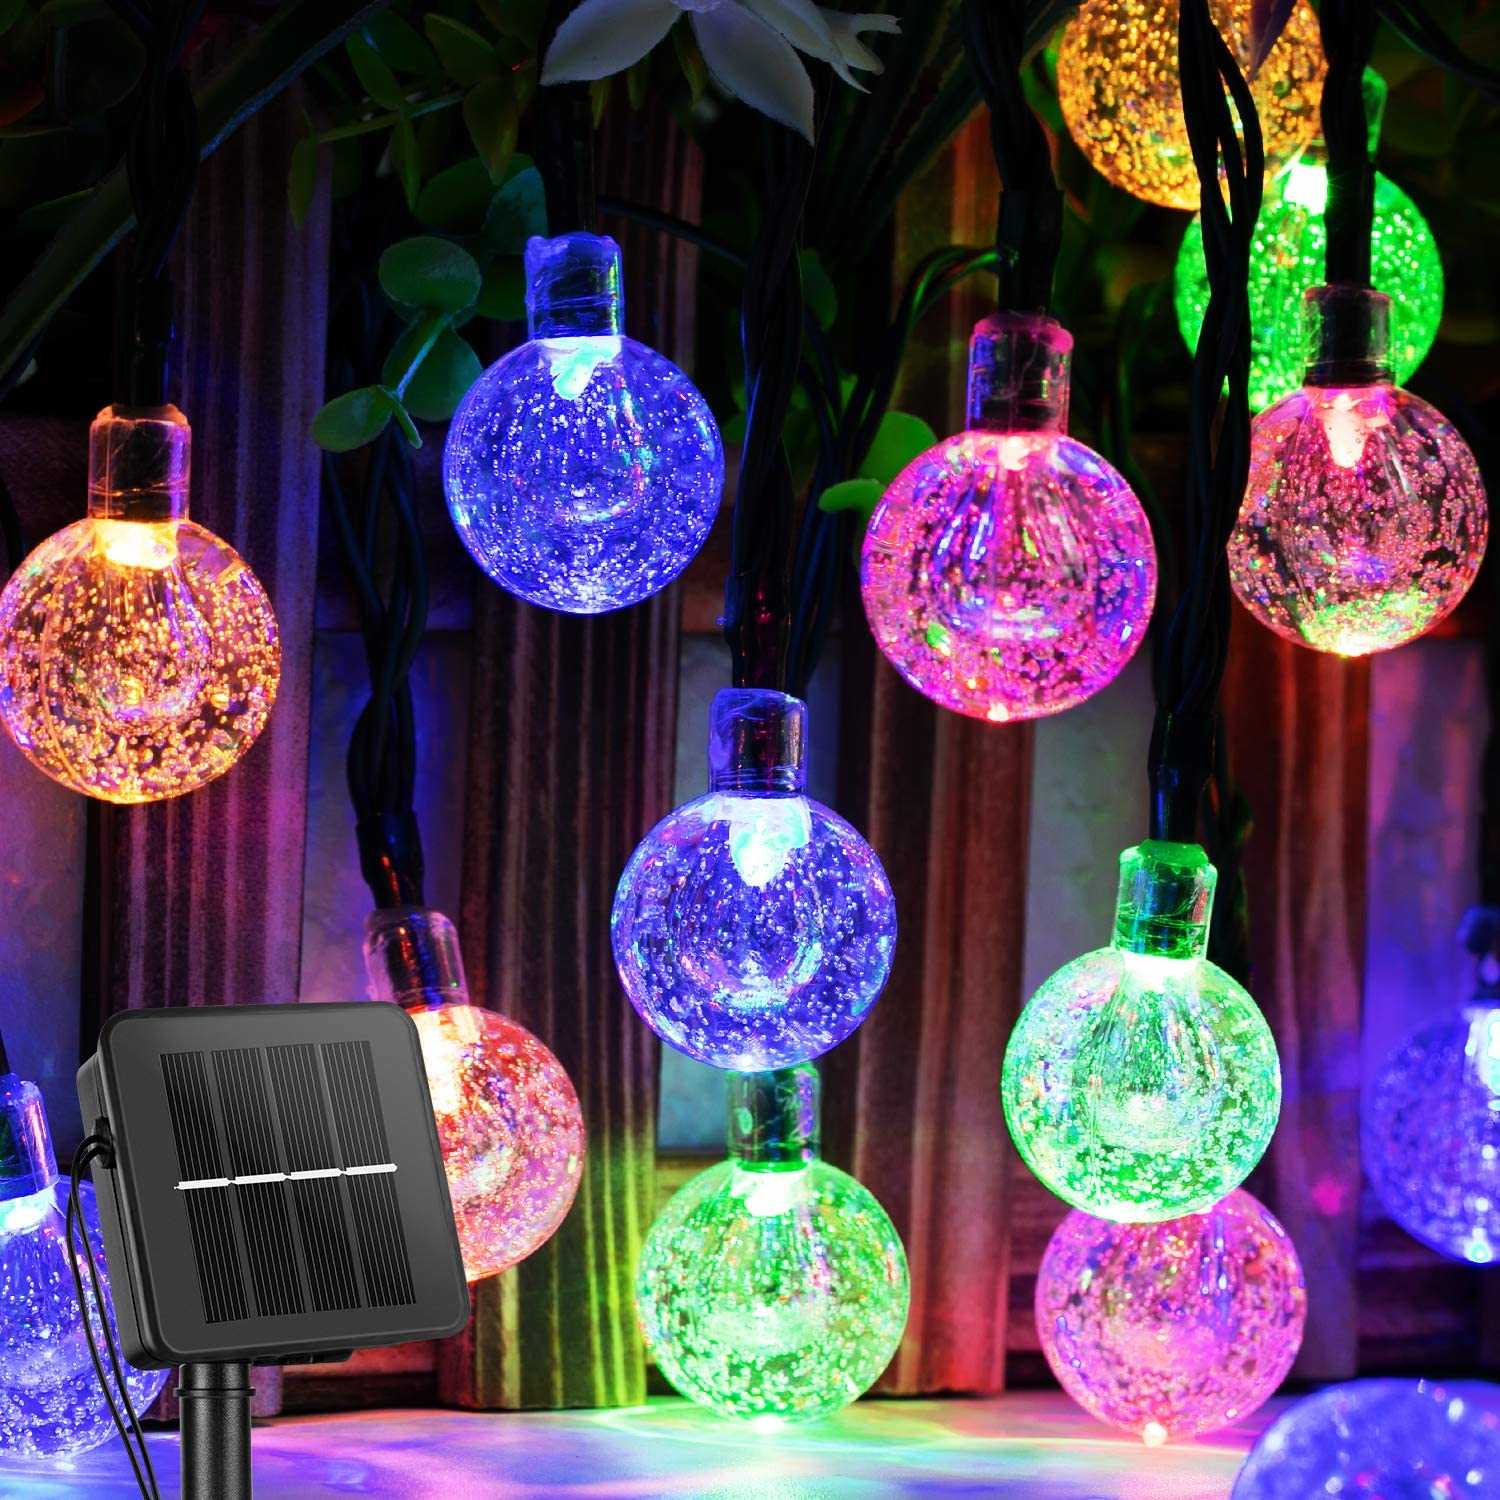 Solar String Lights Outdoor 60 Led 35.6 Feet Crystal Globe Lights with 8 Lighting Modes, Waterproof Solar Powered Patio Lights for Garden Yard Porch Wedding Party Decor (Multicolor)